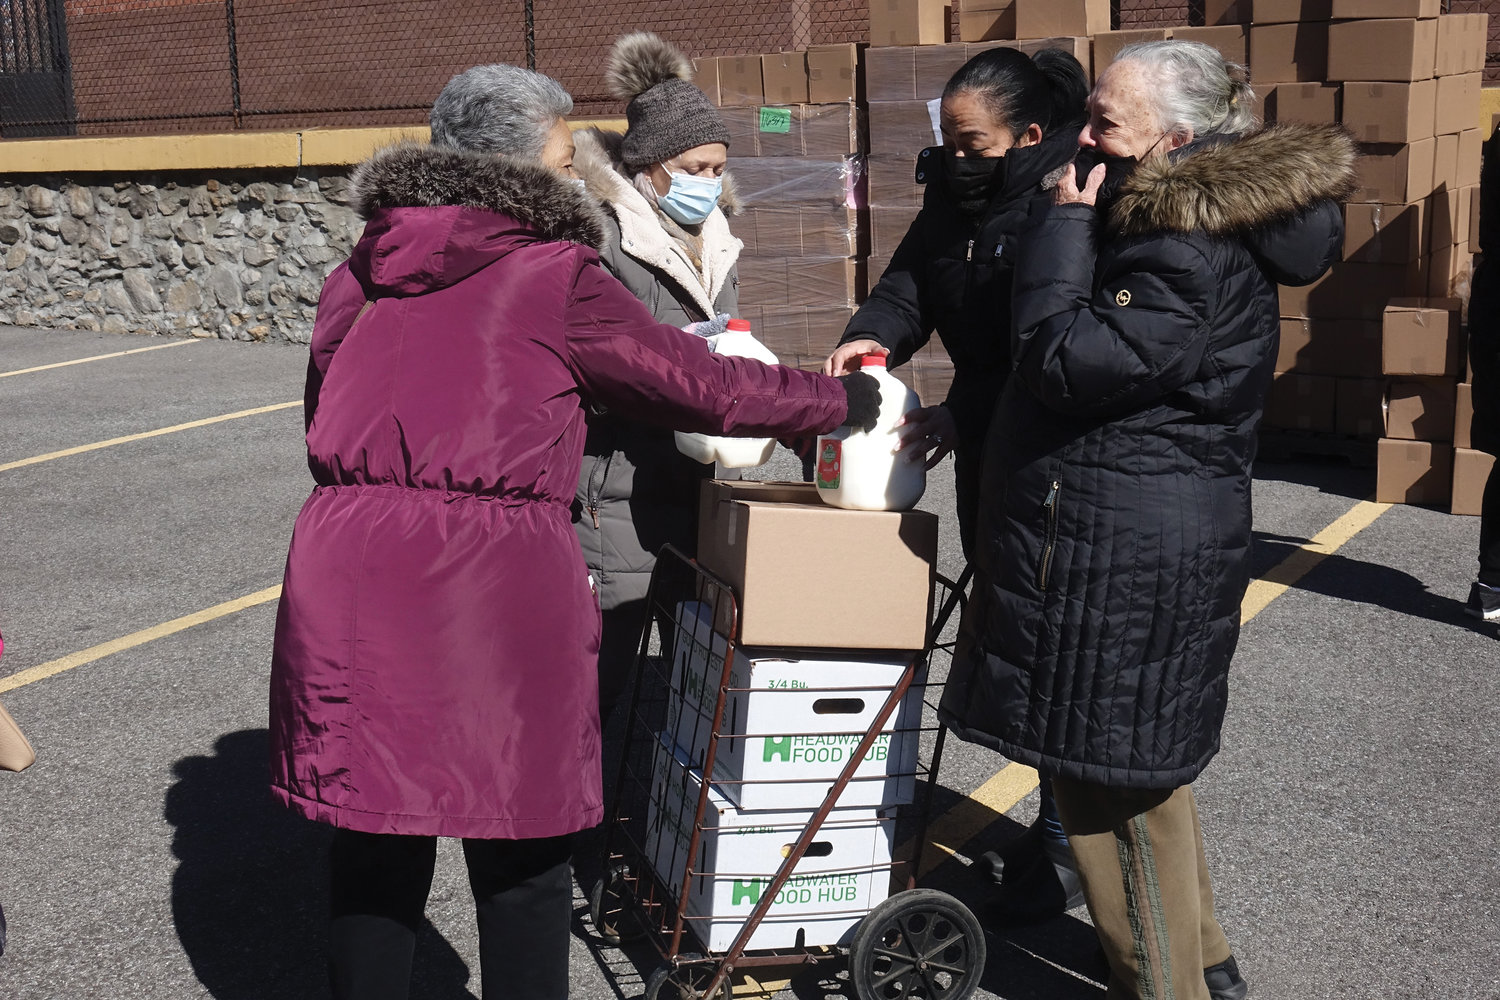 Grateful recipients are shown with food donations.